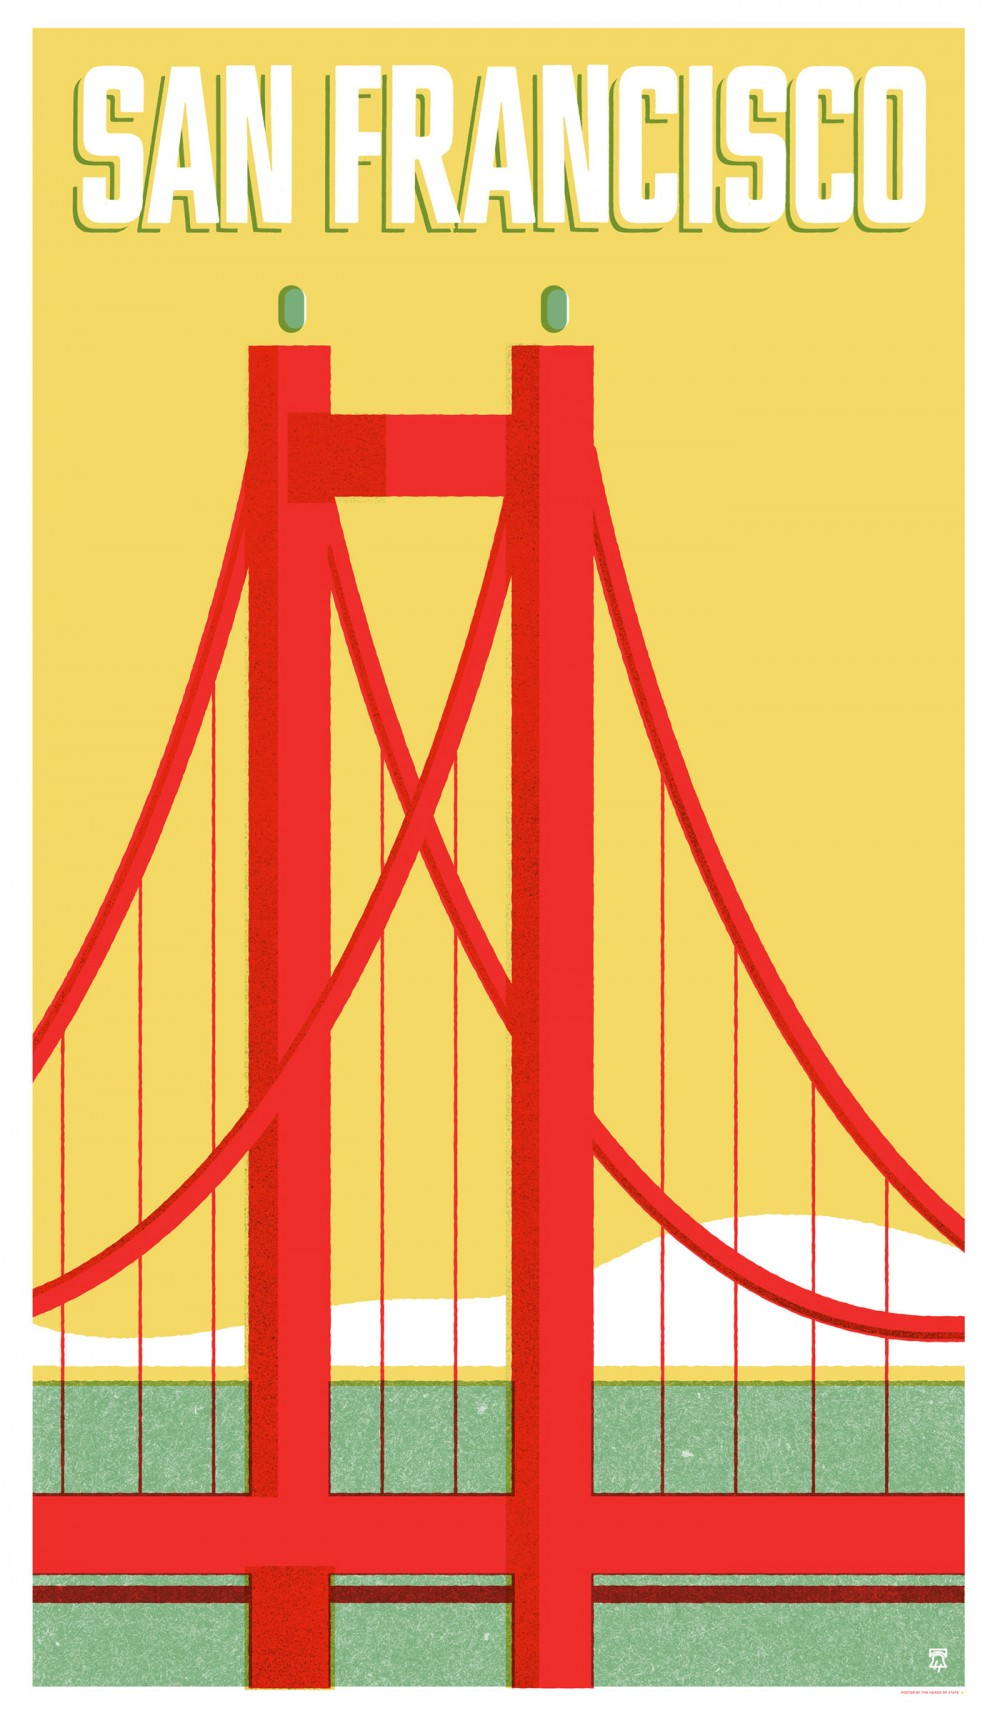 San Francisco, California - Travel Poster Series - The Heads of State